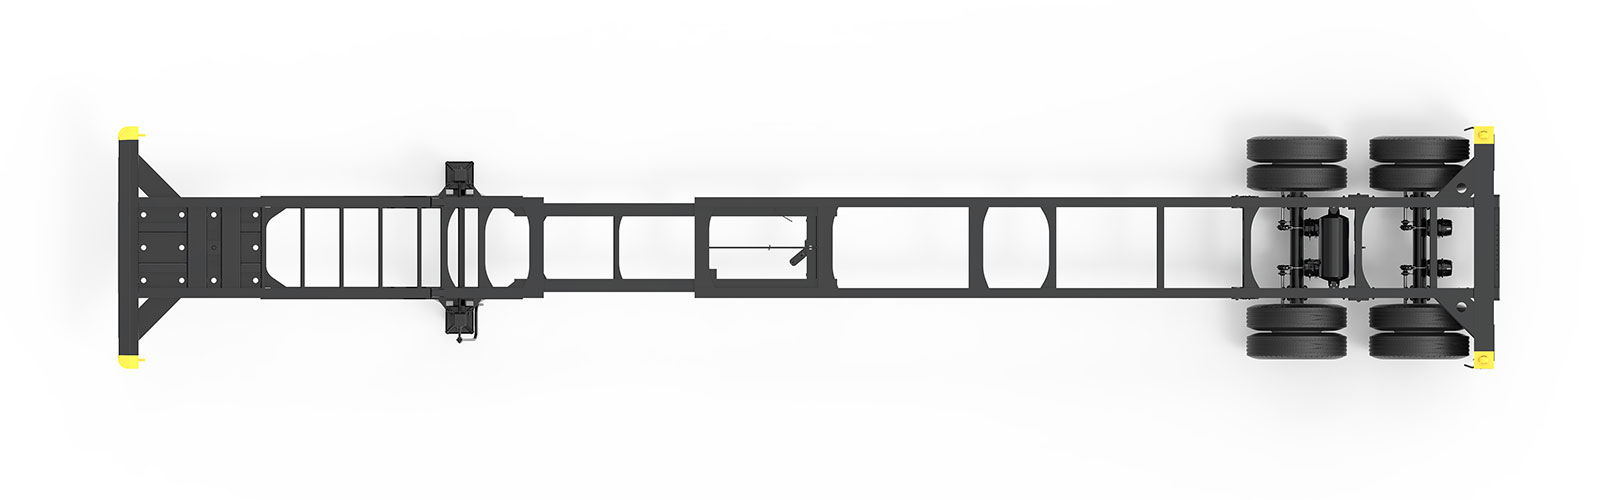 40-45' Extendable Tandem Container Chassis Orthographic Top View Final